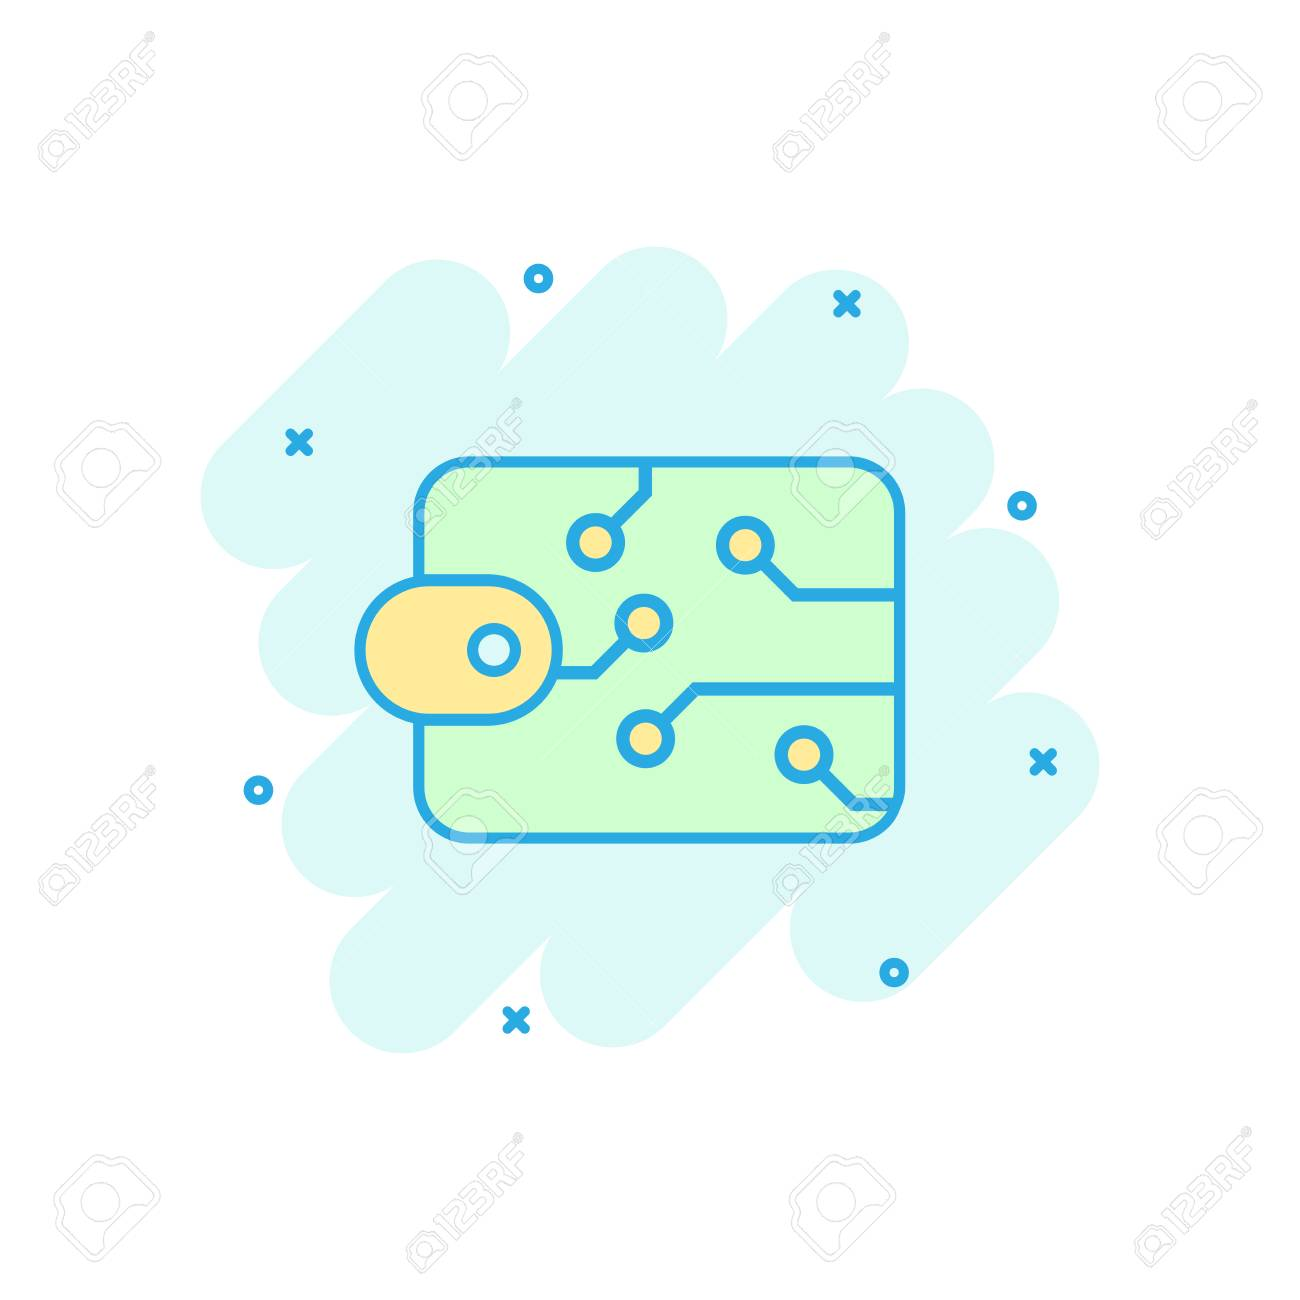 Digital wallet icon in comic style crypto bag vector cartoon illustration pictogram online finance